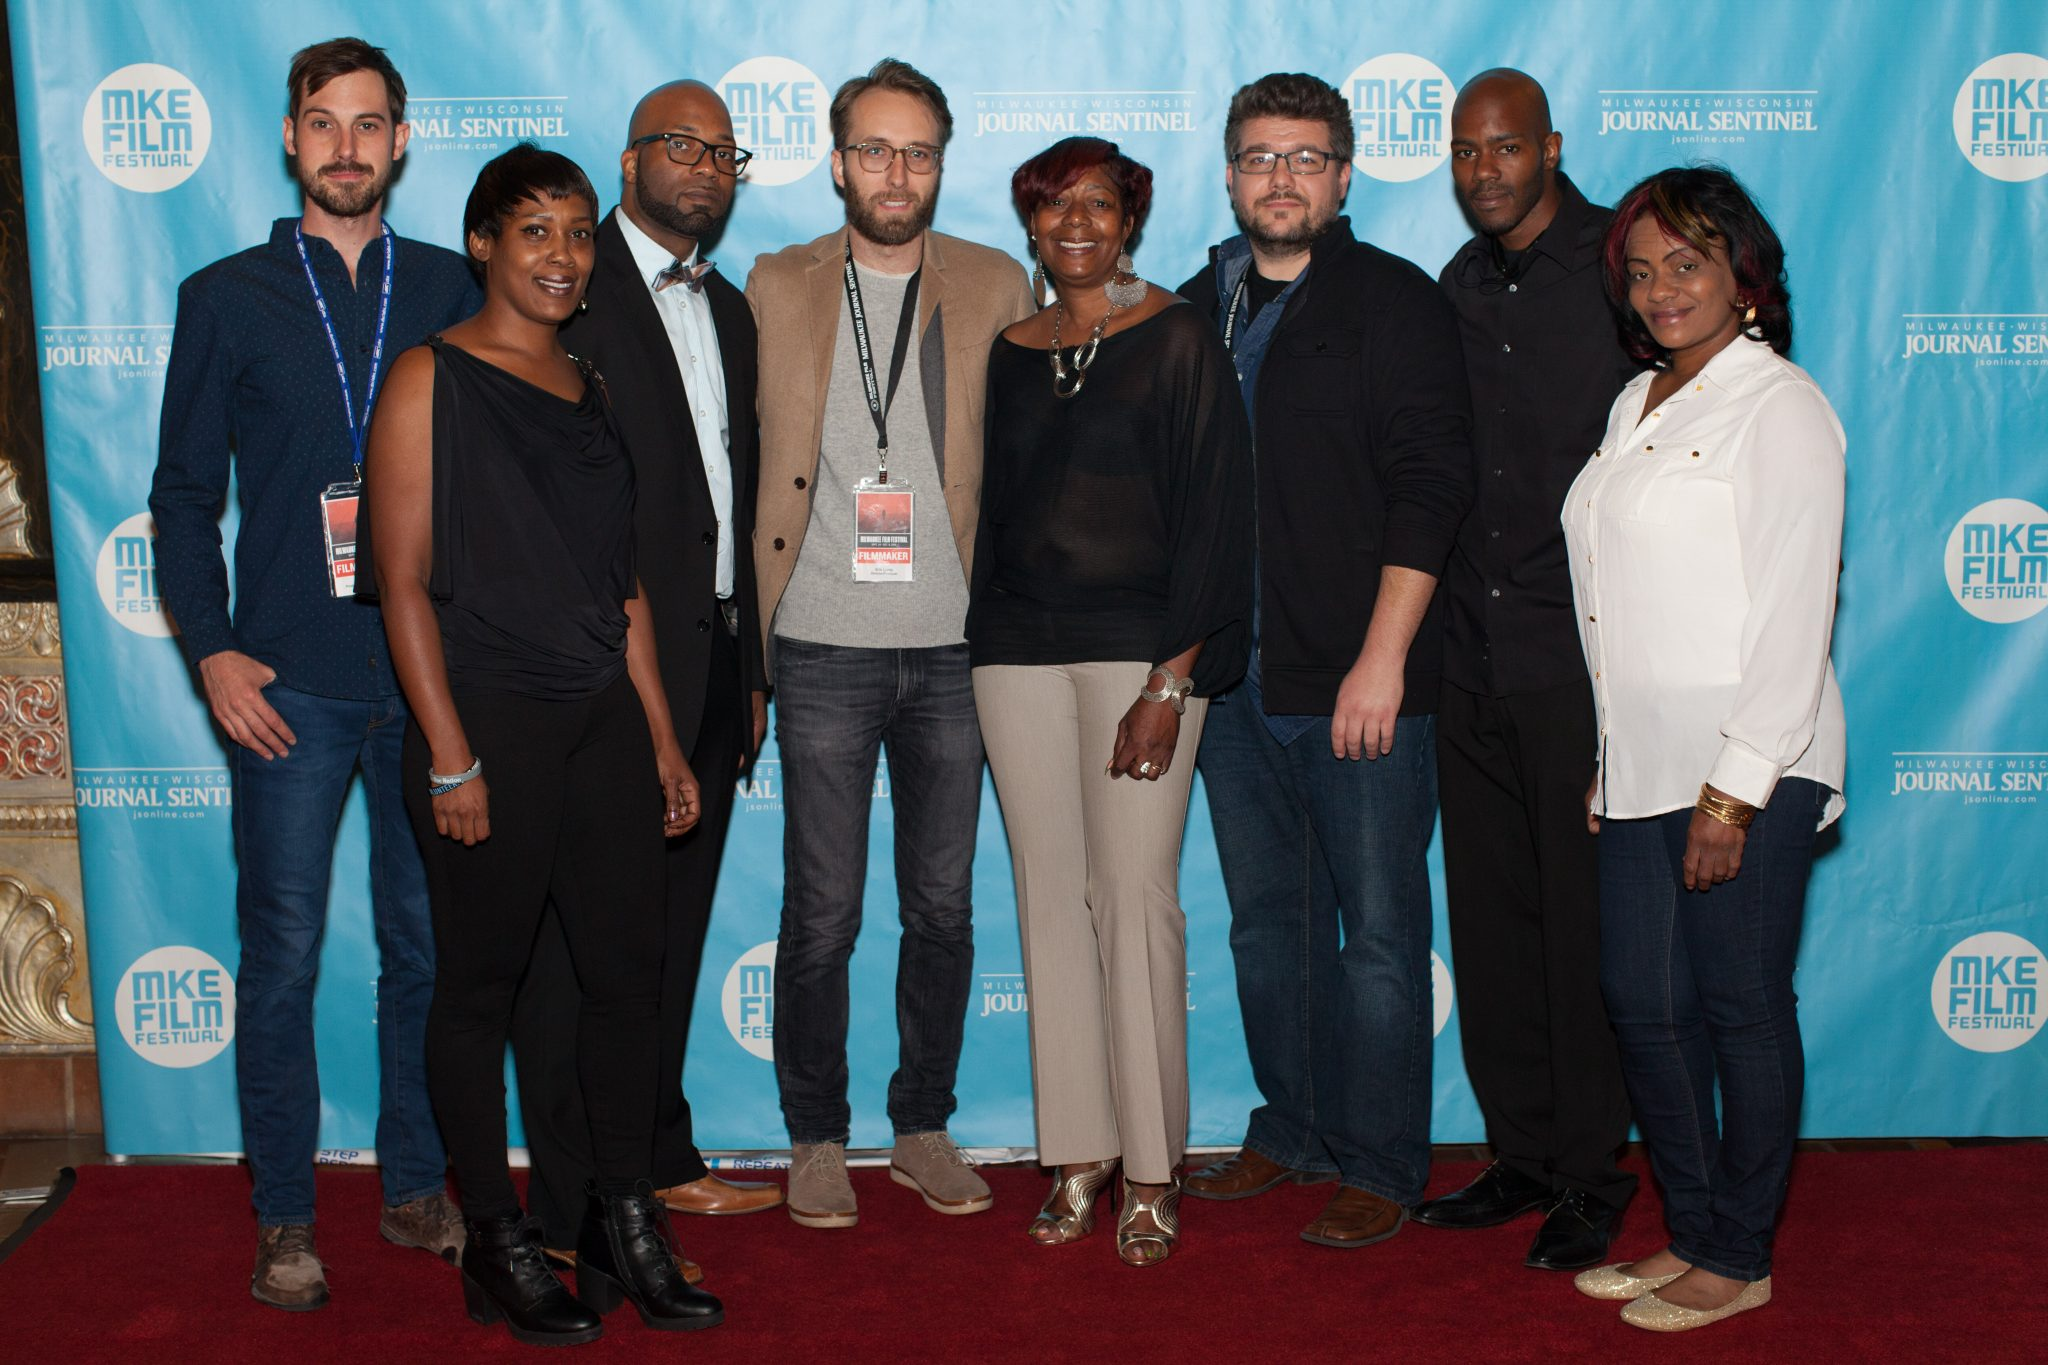 NO ONE'S CHILD, LEMON, THE LOOK OF SILENCE Among 2015 Milwaukee Film Festival Jury Award Winners